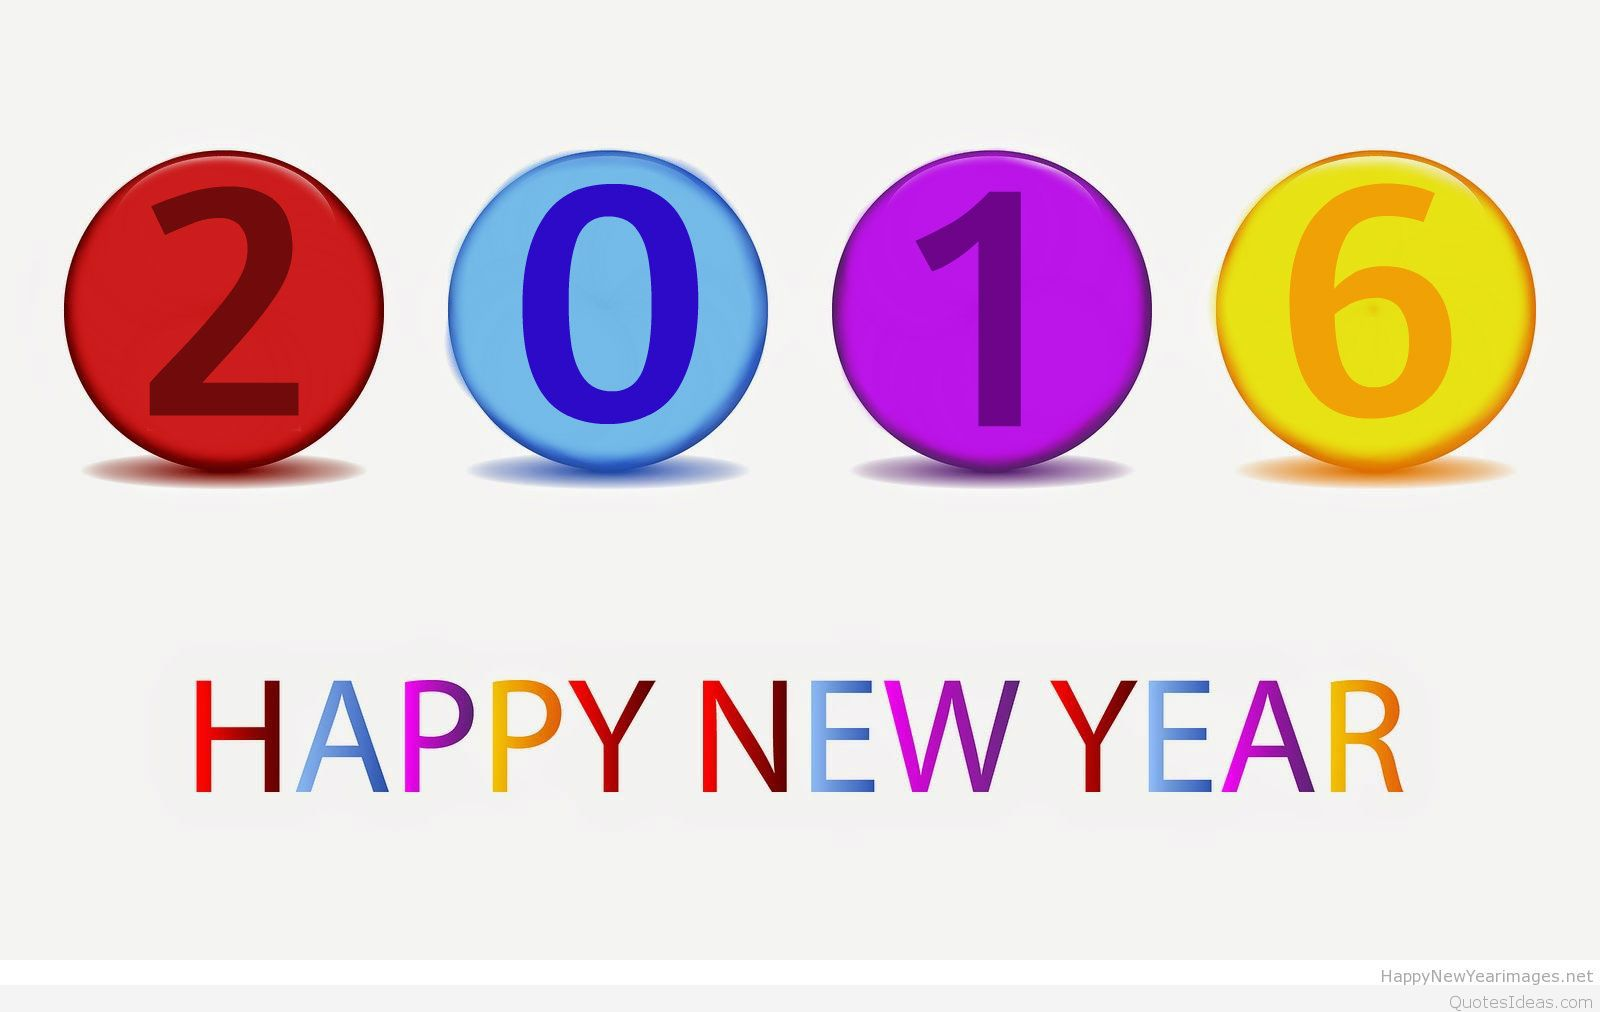 1600x1012 Happy New Year 6 Clipart Clipartfest